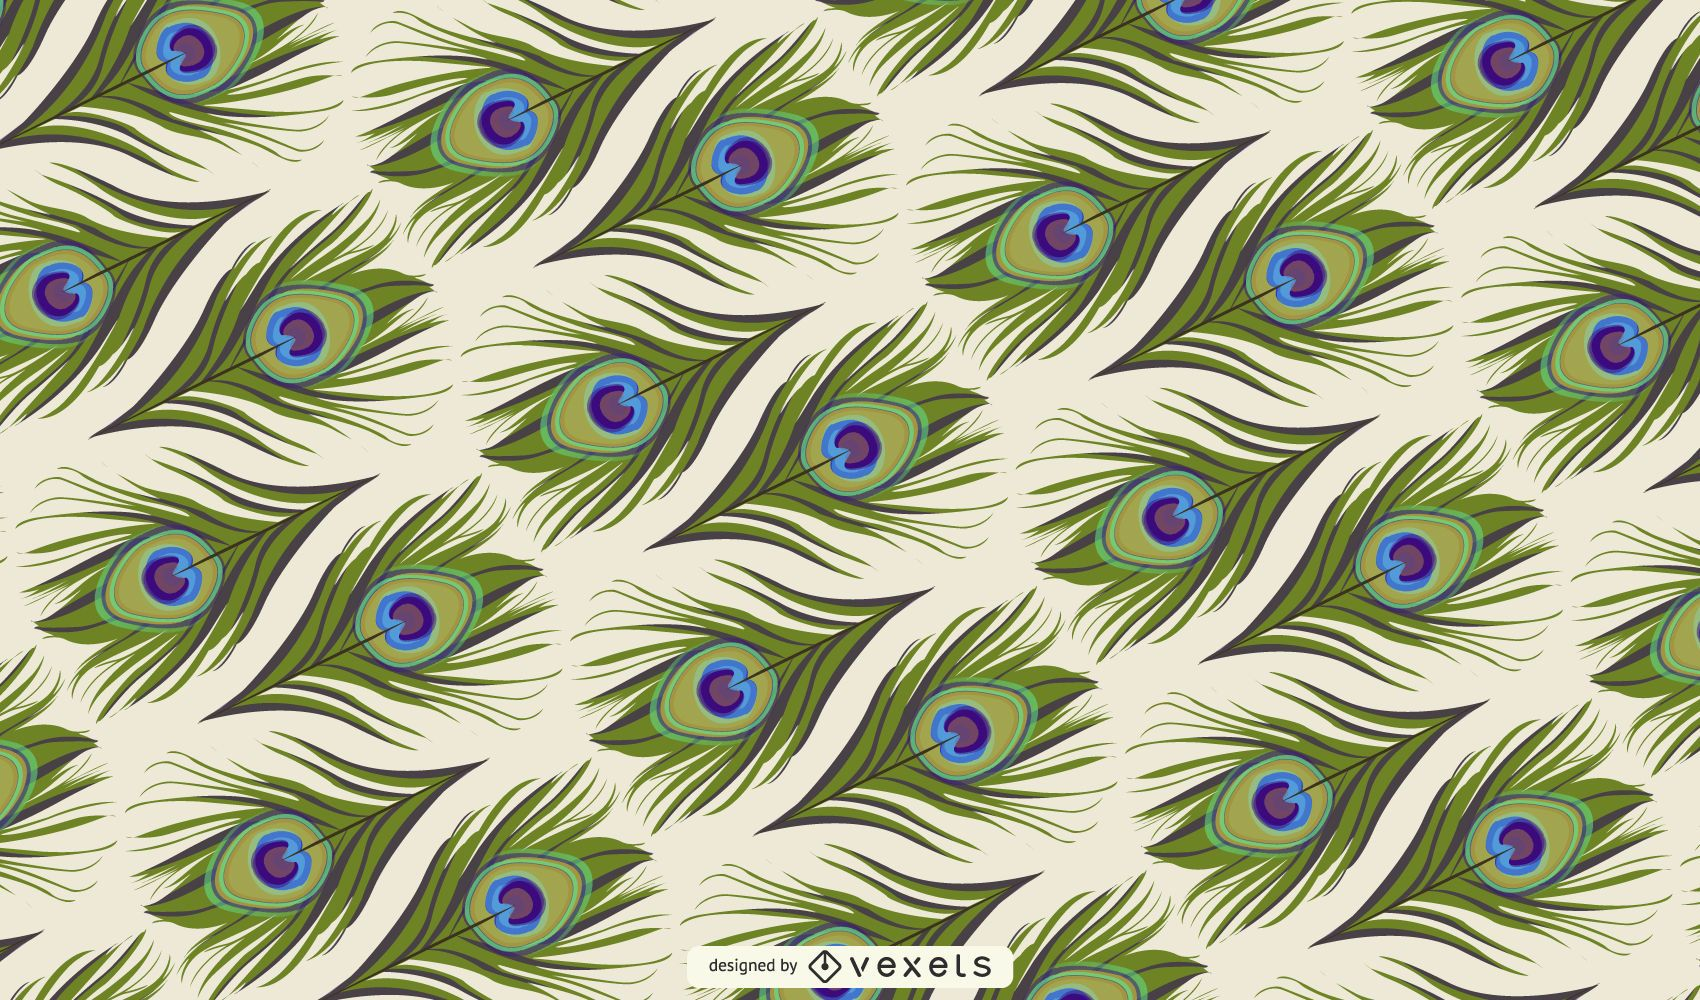 Peacock Feather Background Design